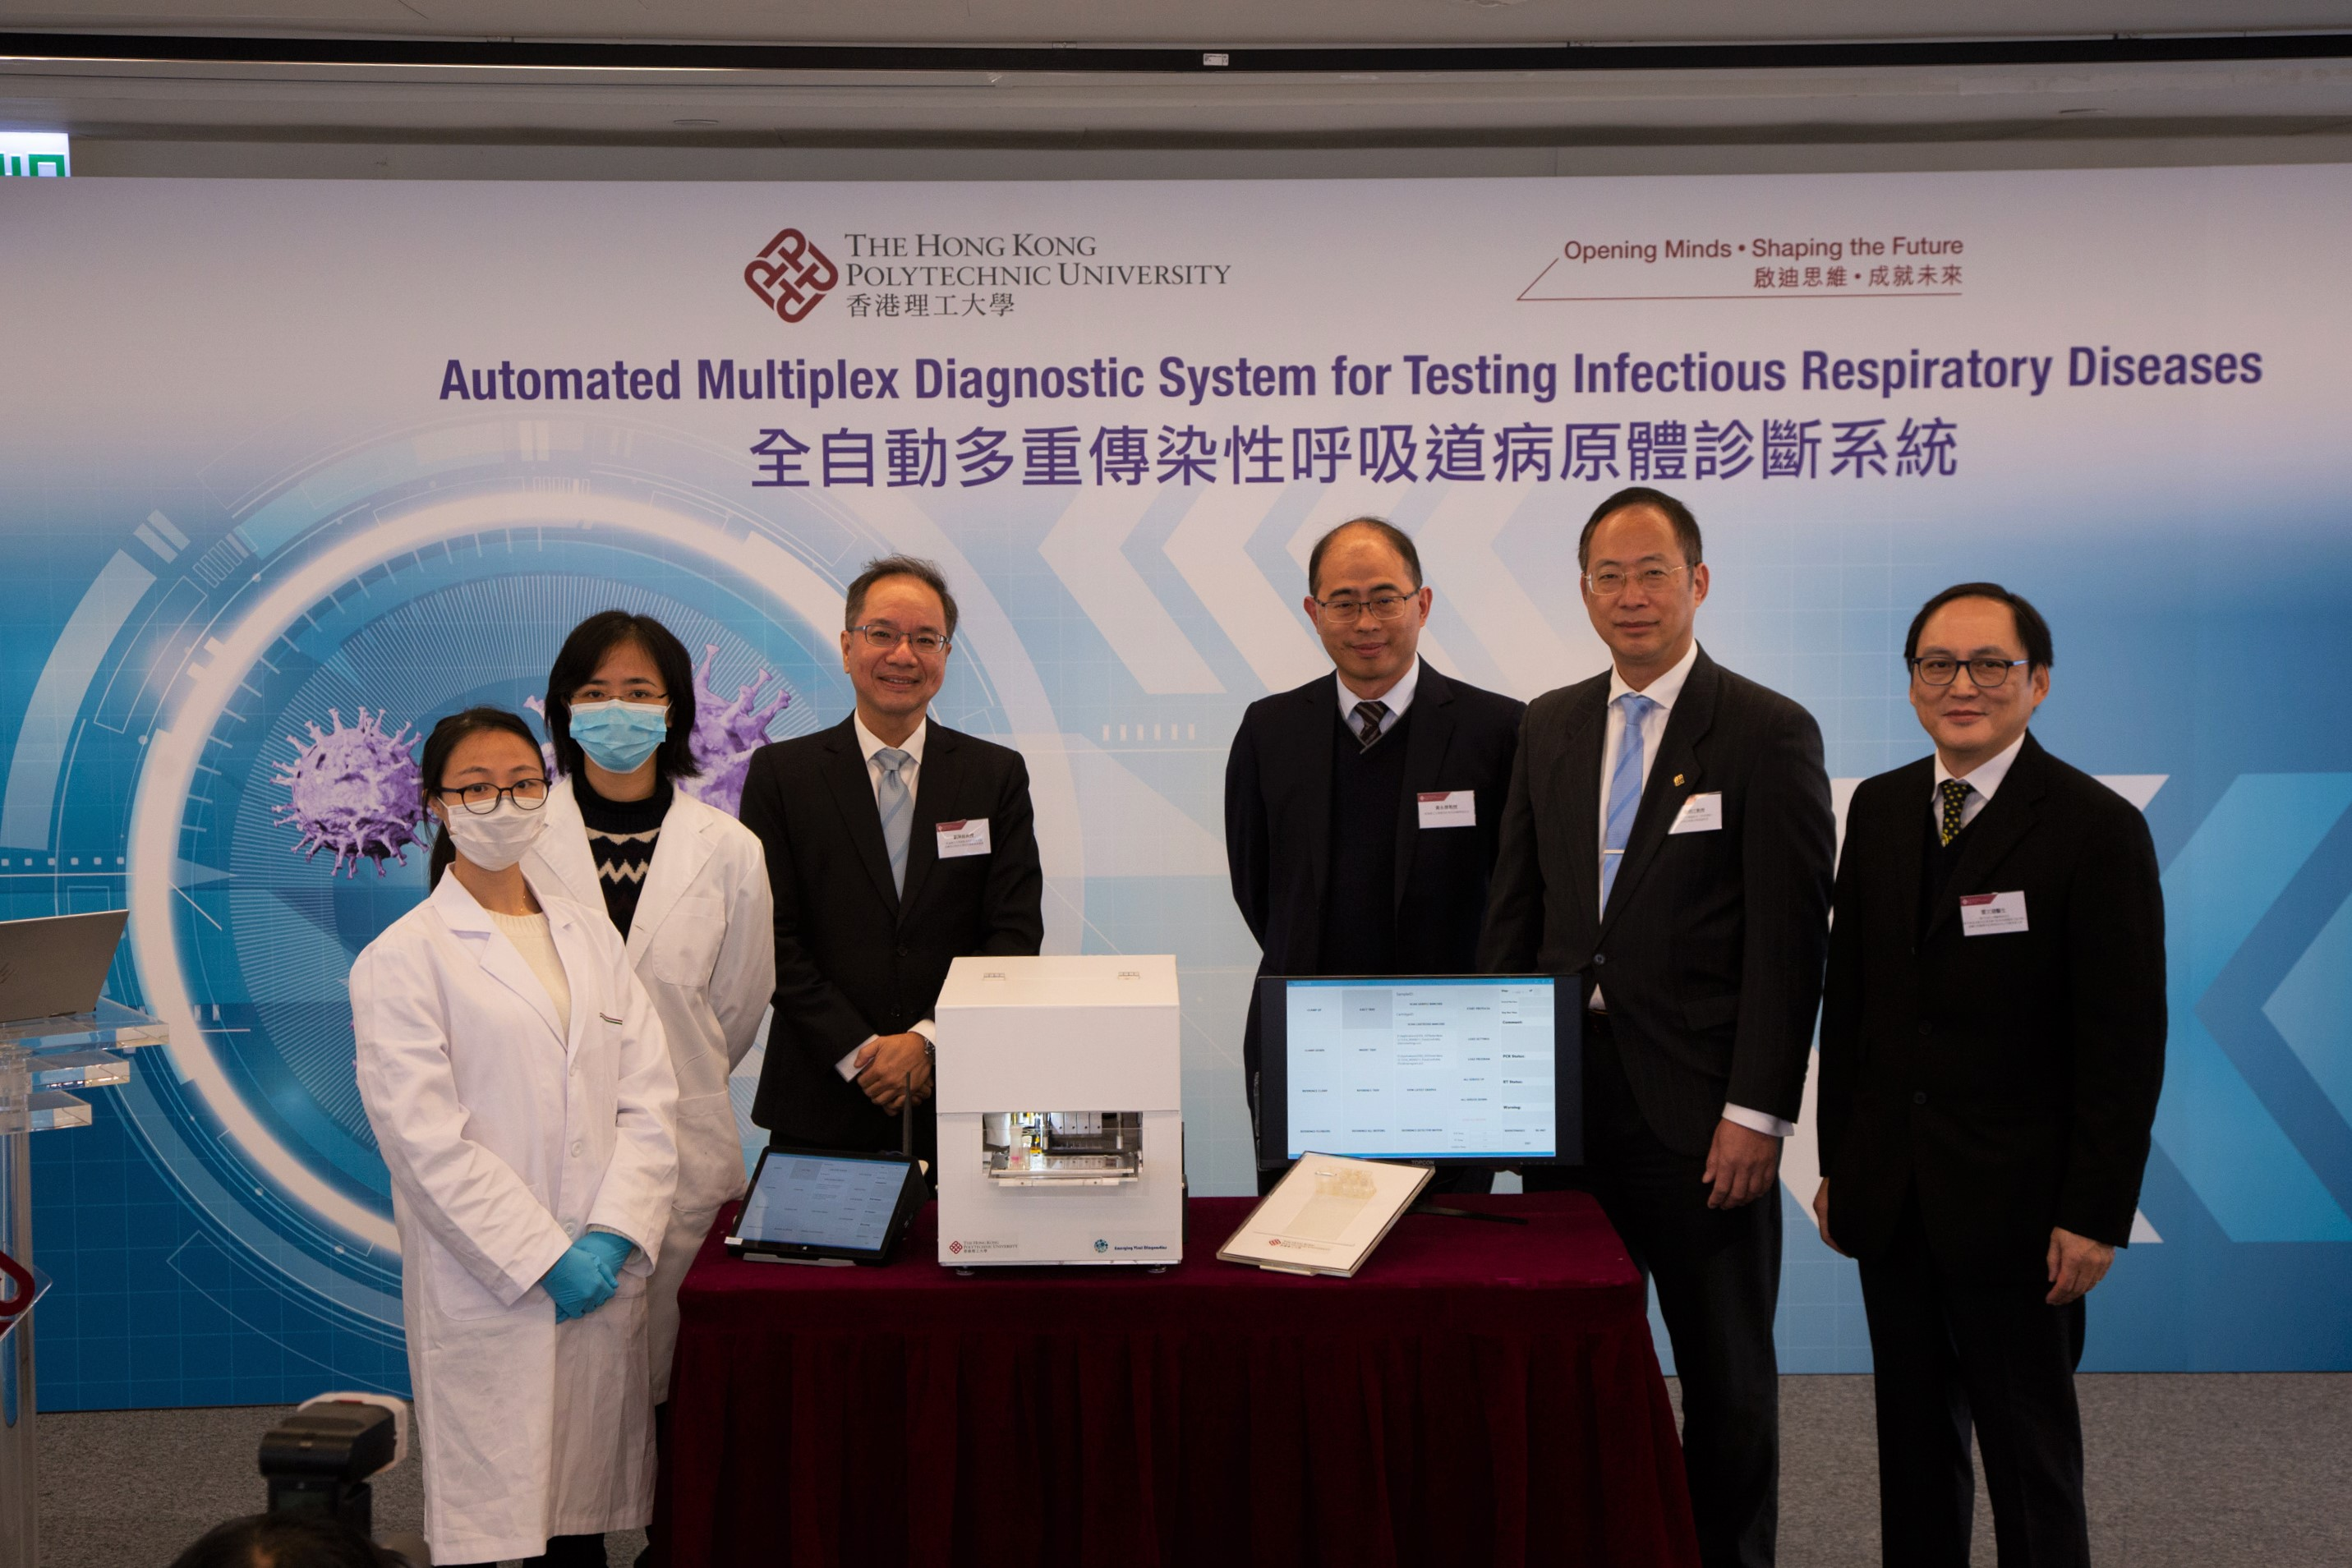 2020_02_11-PC on Rapid Detection System for Testing Infectious Diseases-107_r1.jpg